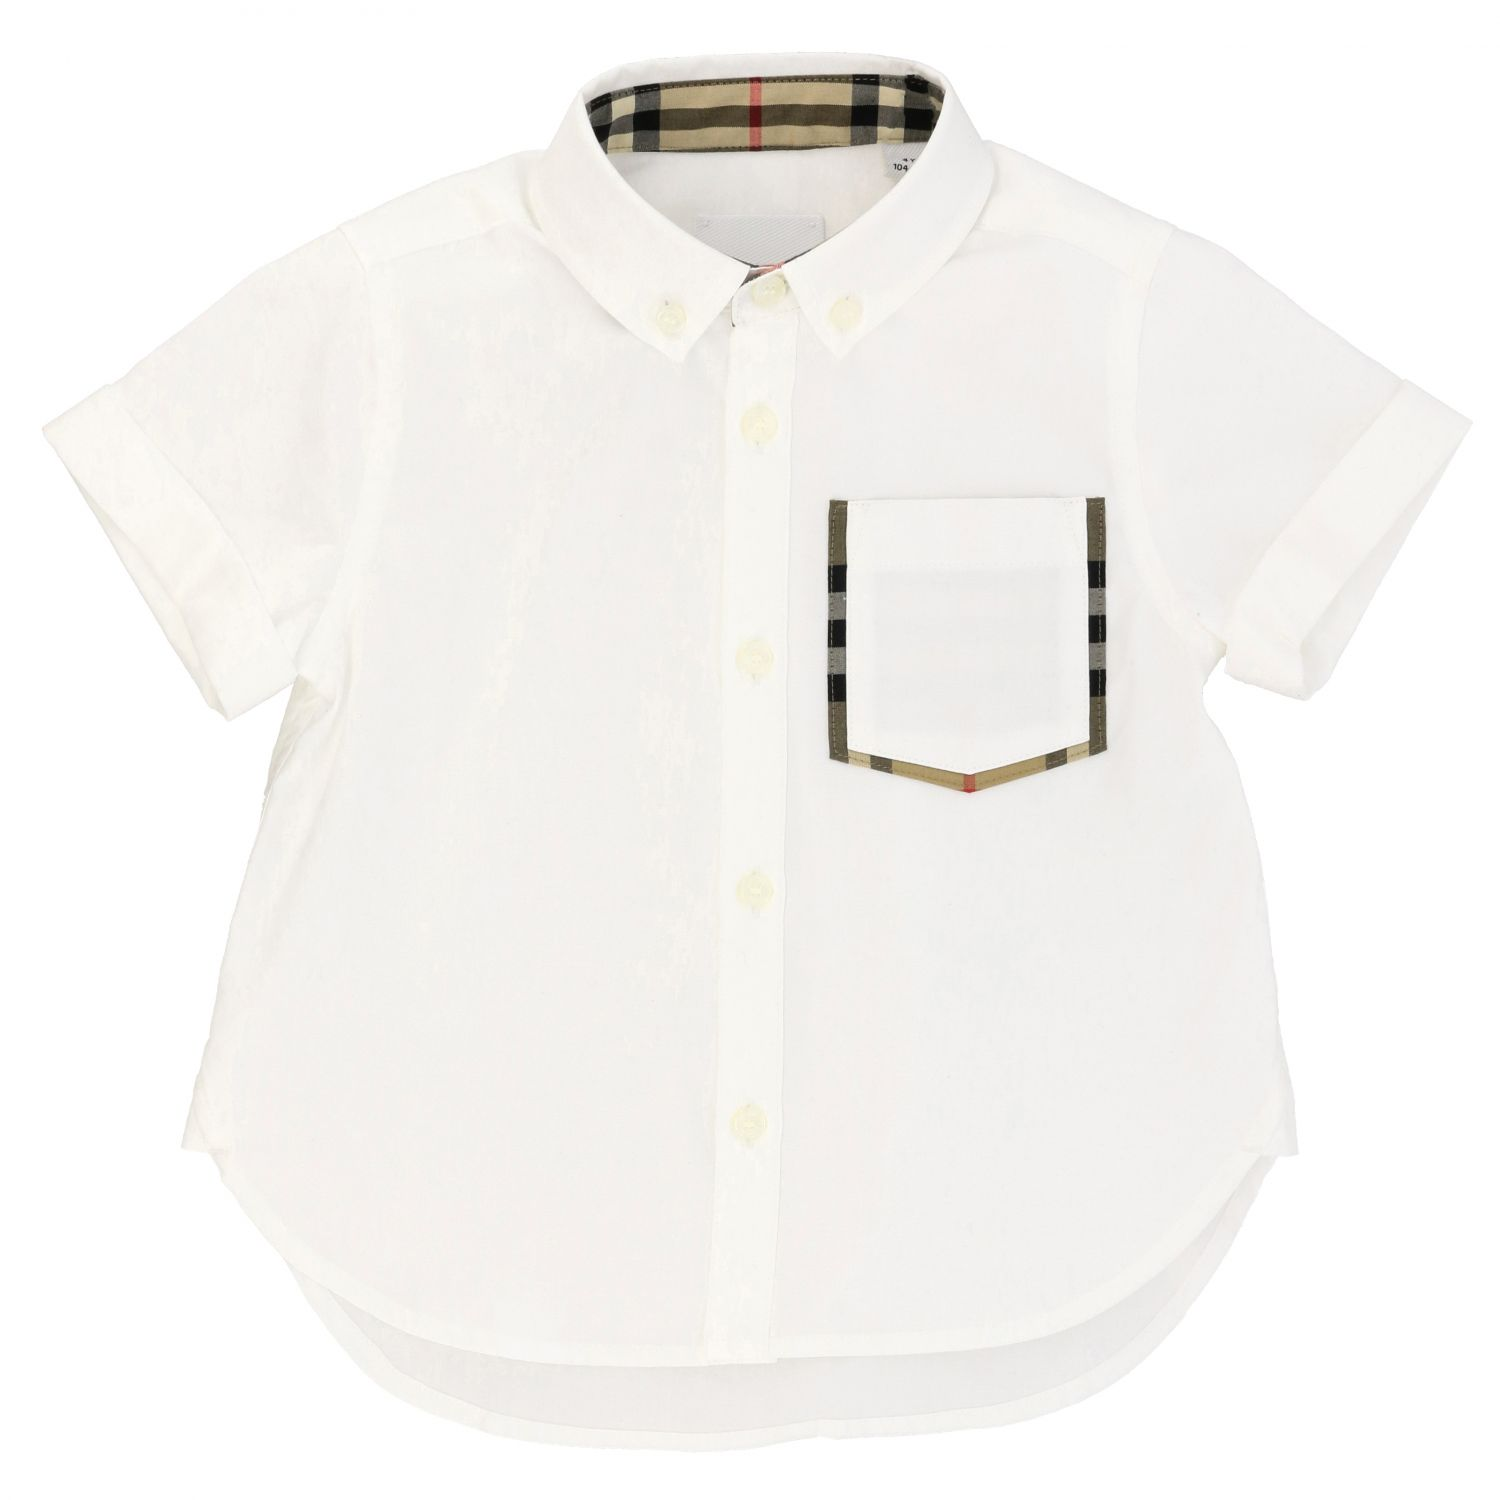 Burberry cotton shirt with button down collar and pocket white 1